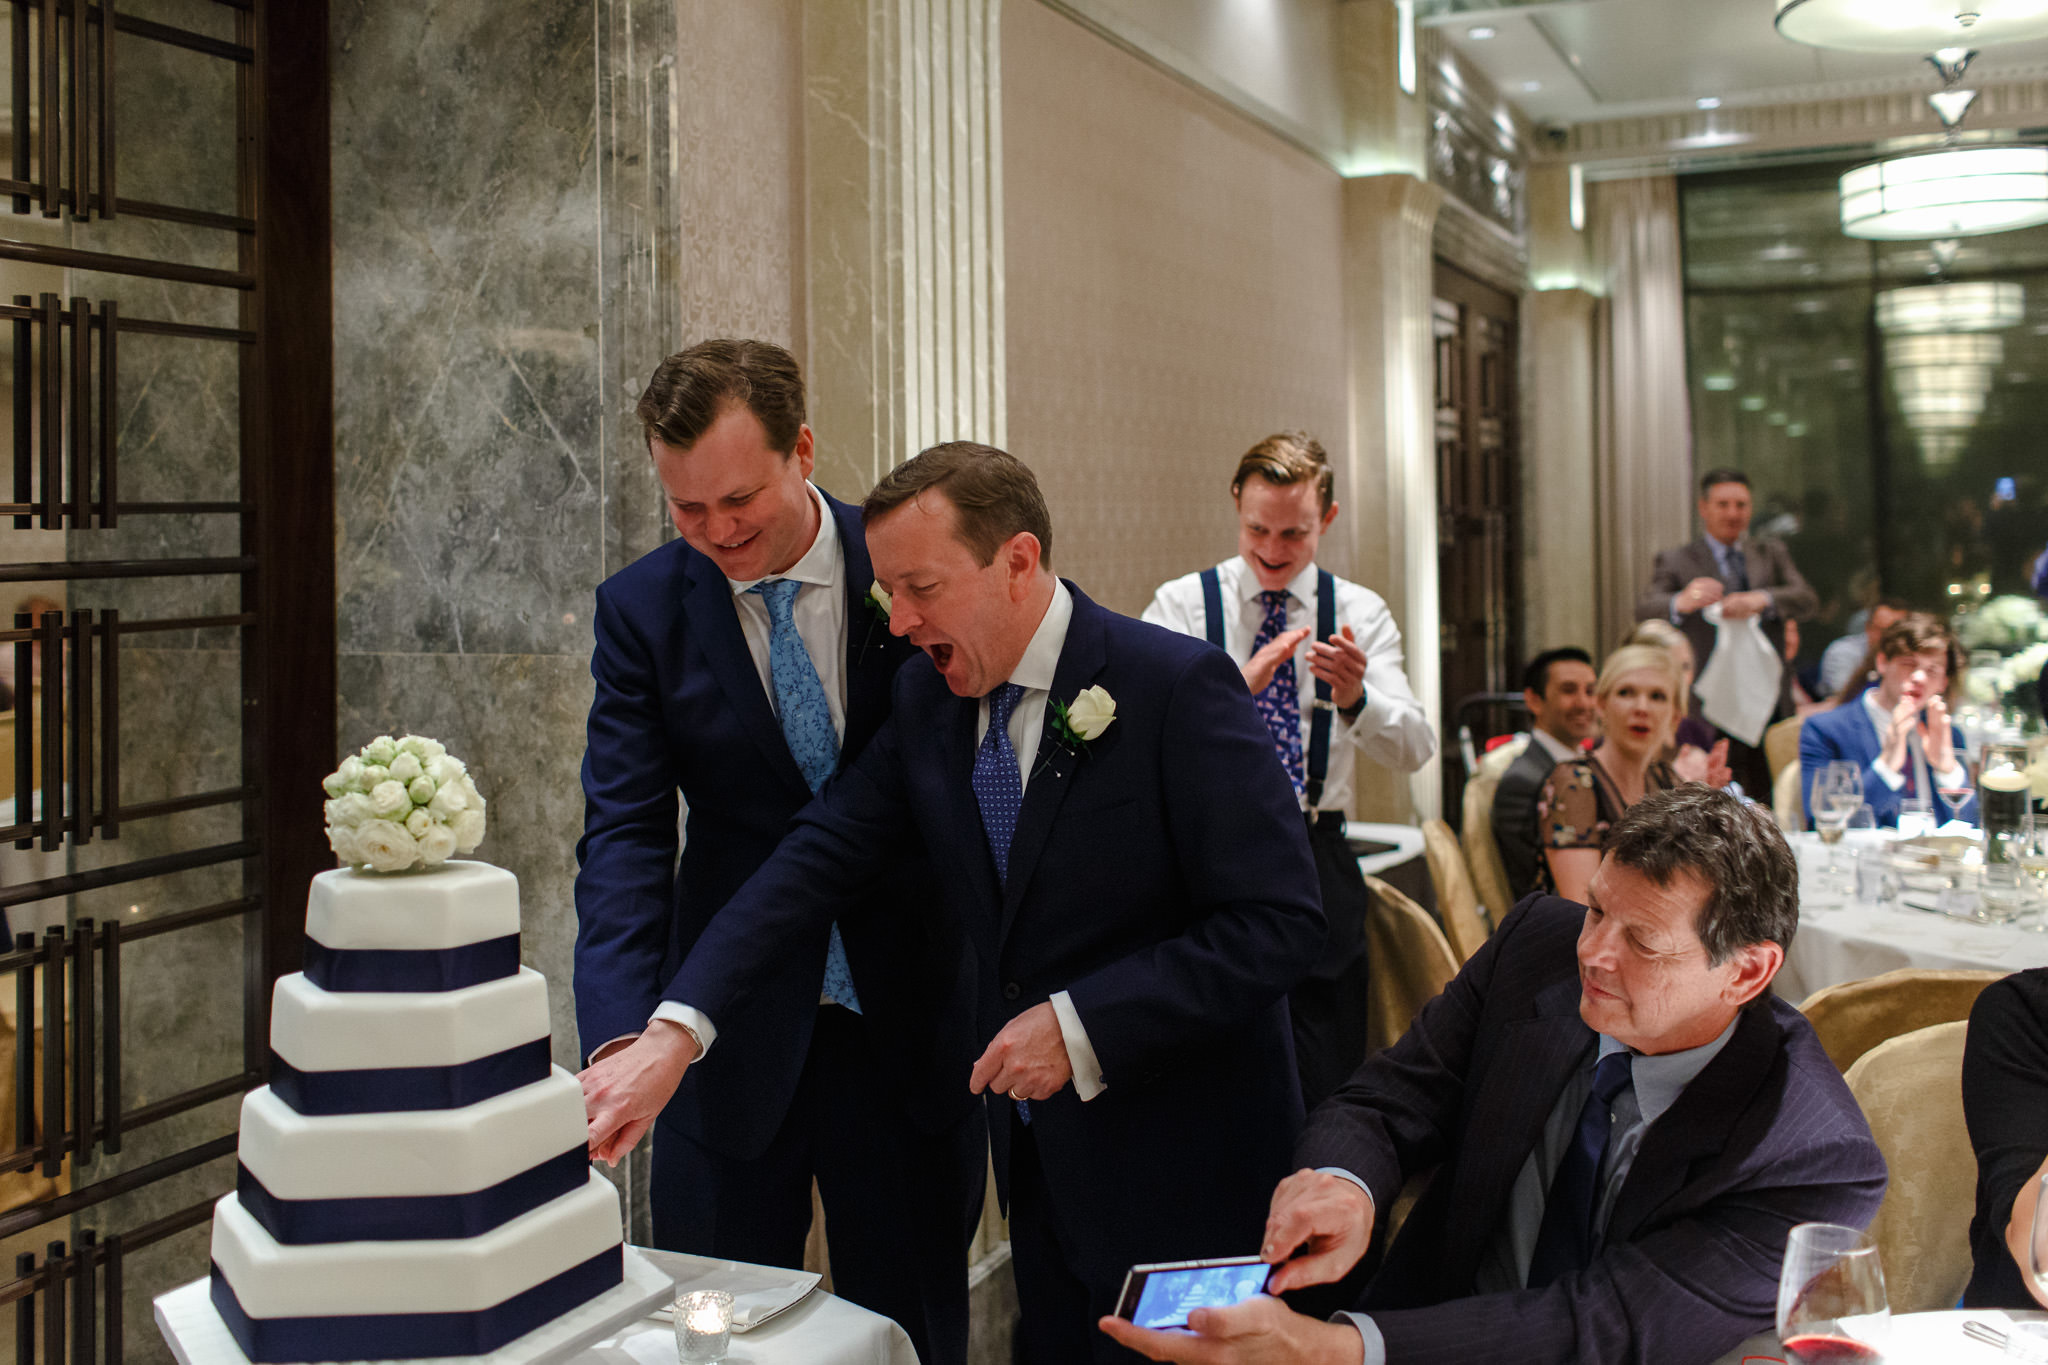 Connaught Hotel Wedding Photos The grooms cut the cake